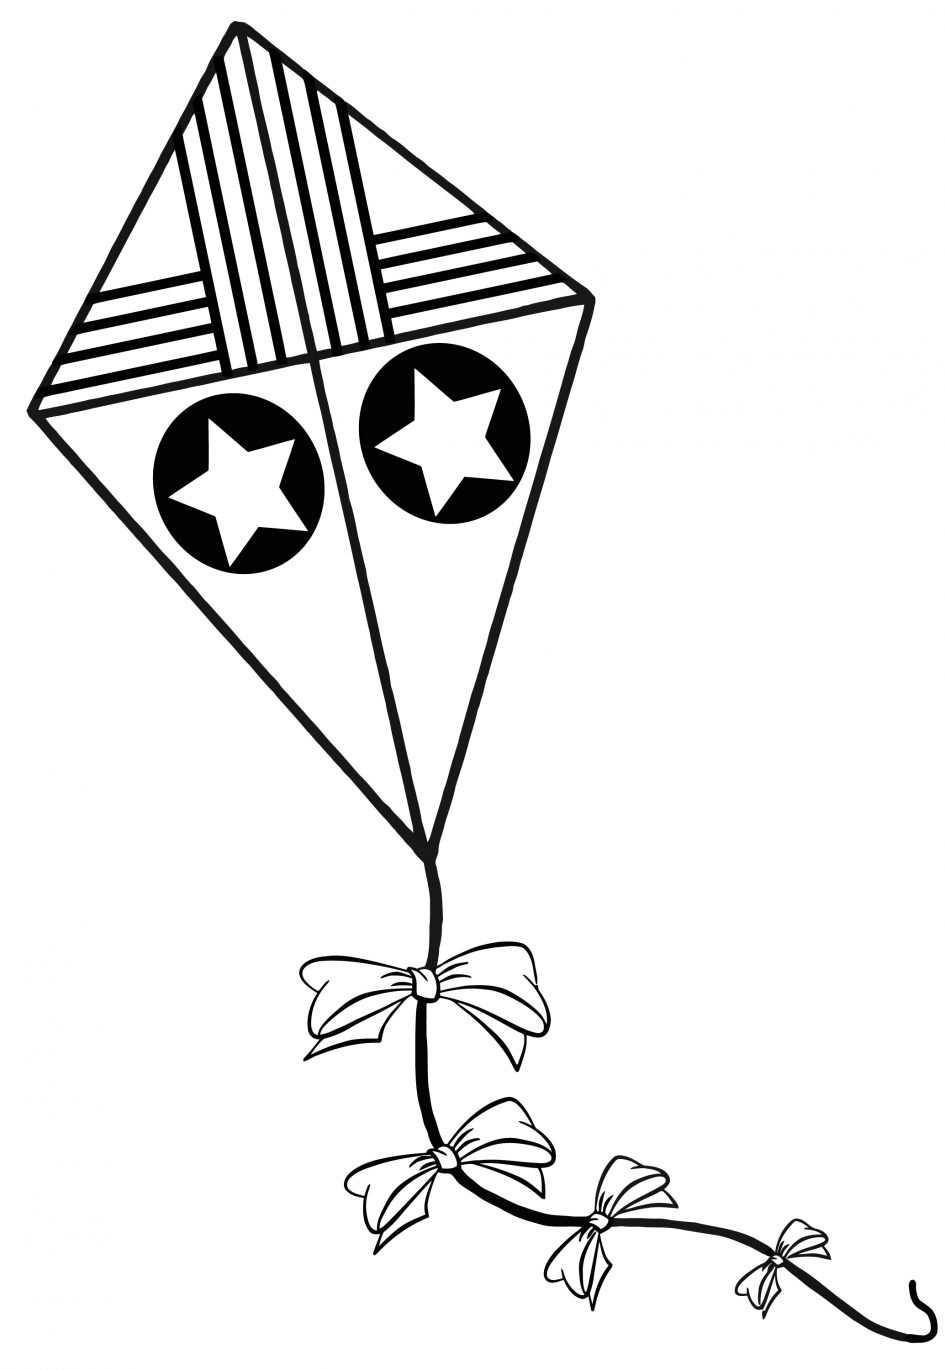 coloring kite images black and white best kite clipart 8520 clipartioncom kite images white and black coloring